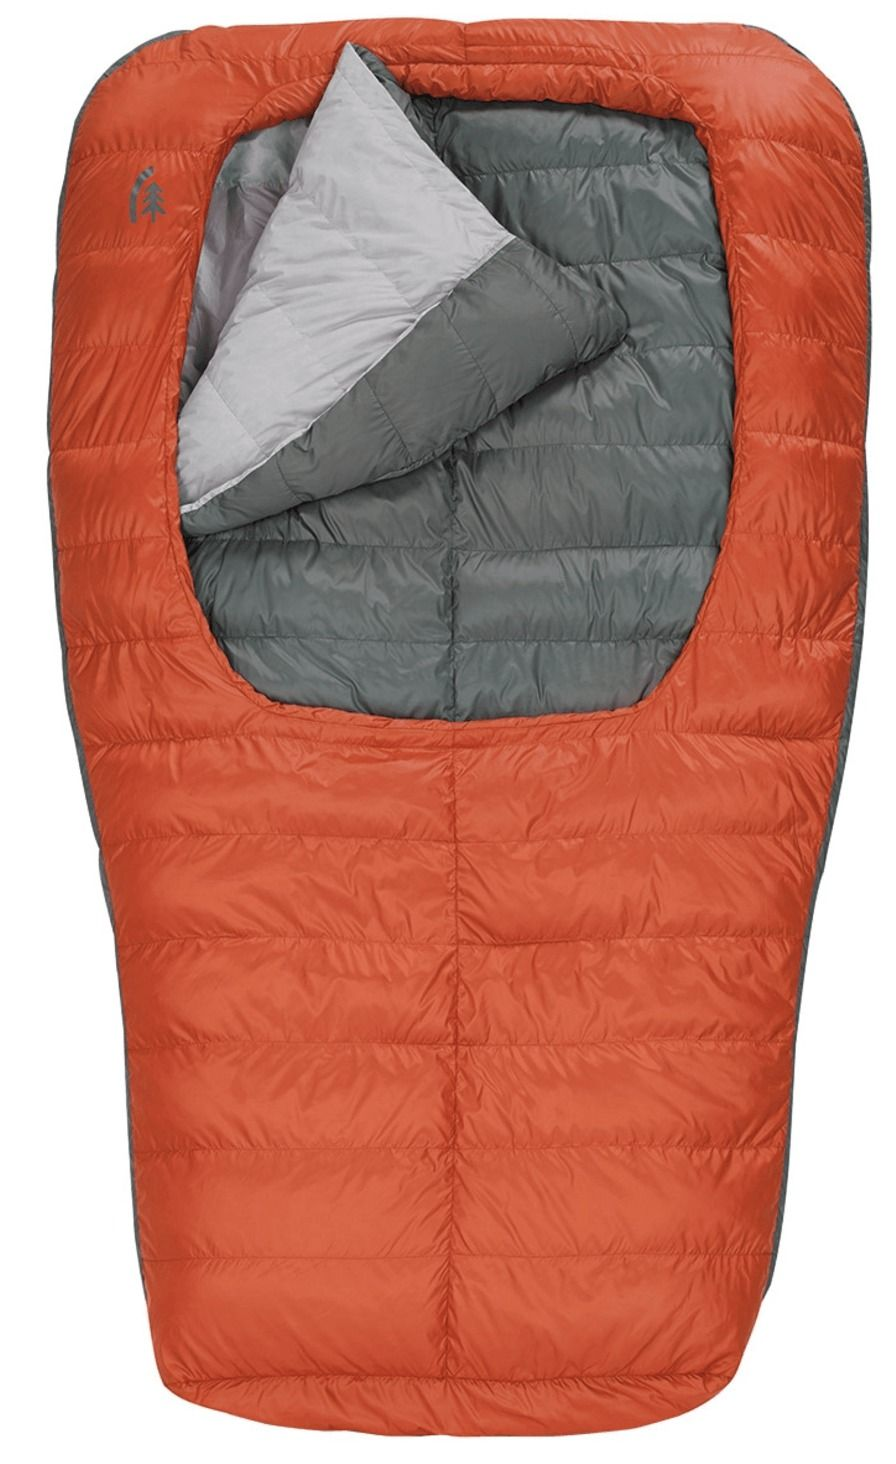 Sierra Designs Delivers with the Couples Sleeping Bag